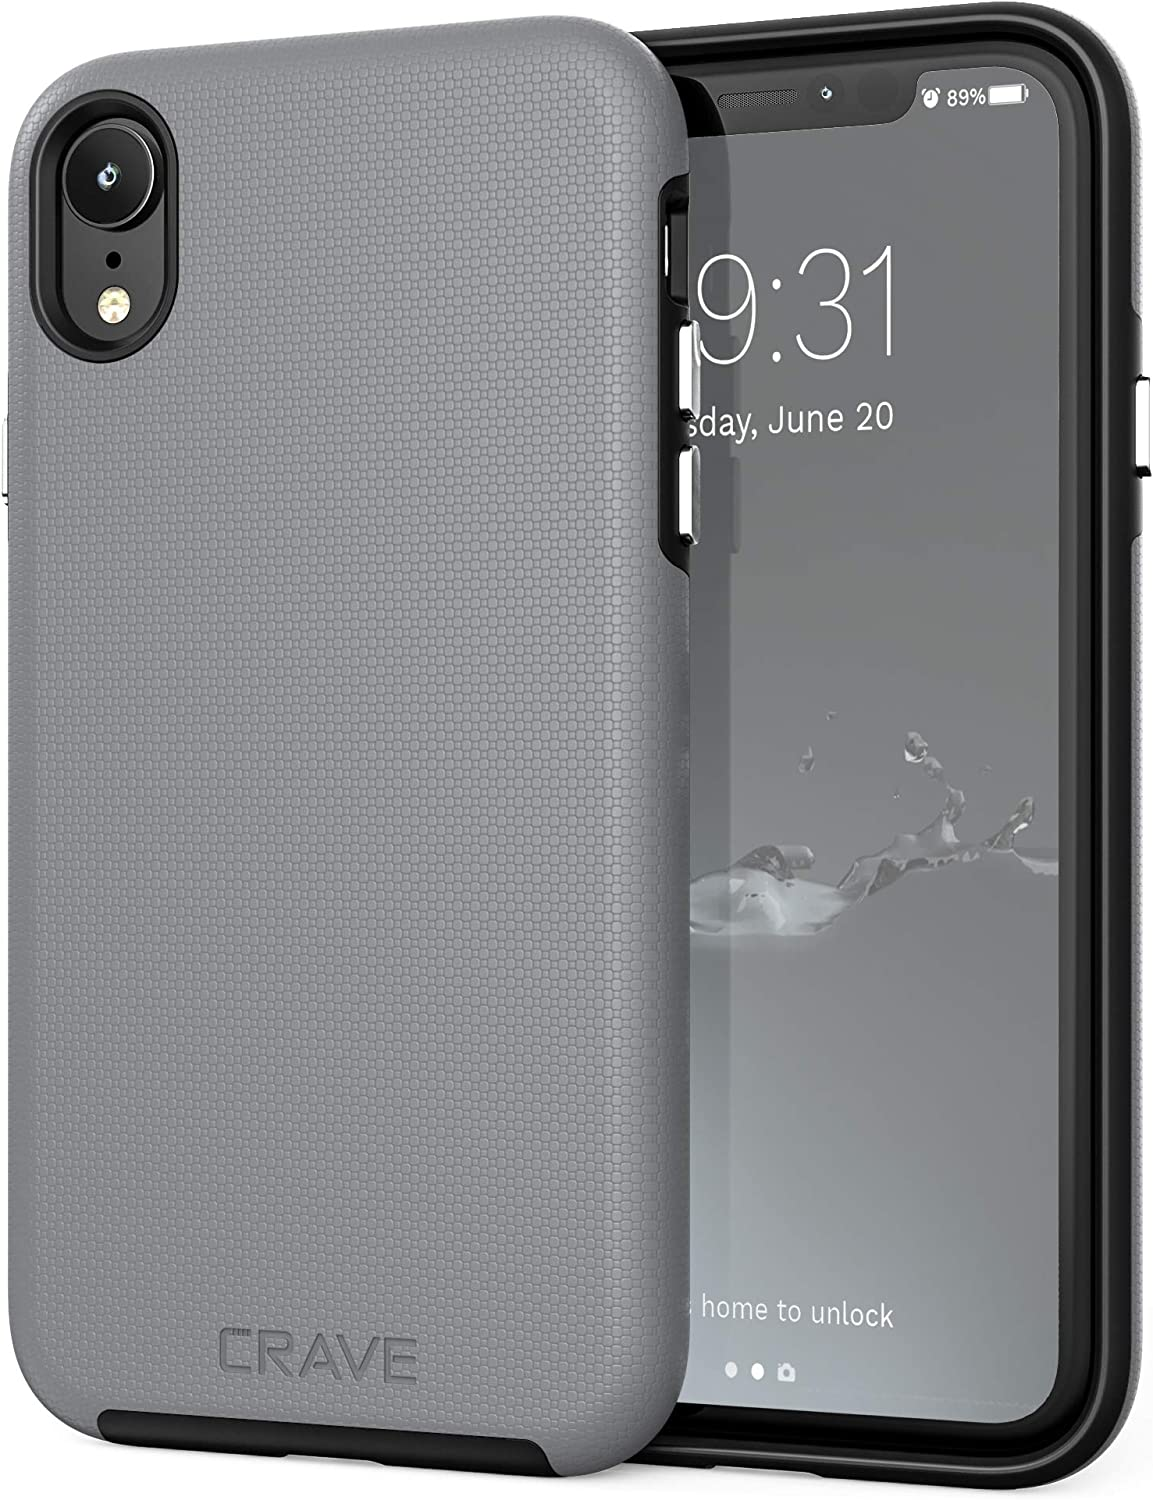 iPhone XR Case, Crave Dual Guard Protection Series Case for Apple iPhone XR (6.1 inch) - Slate